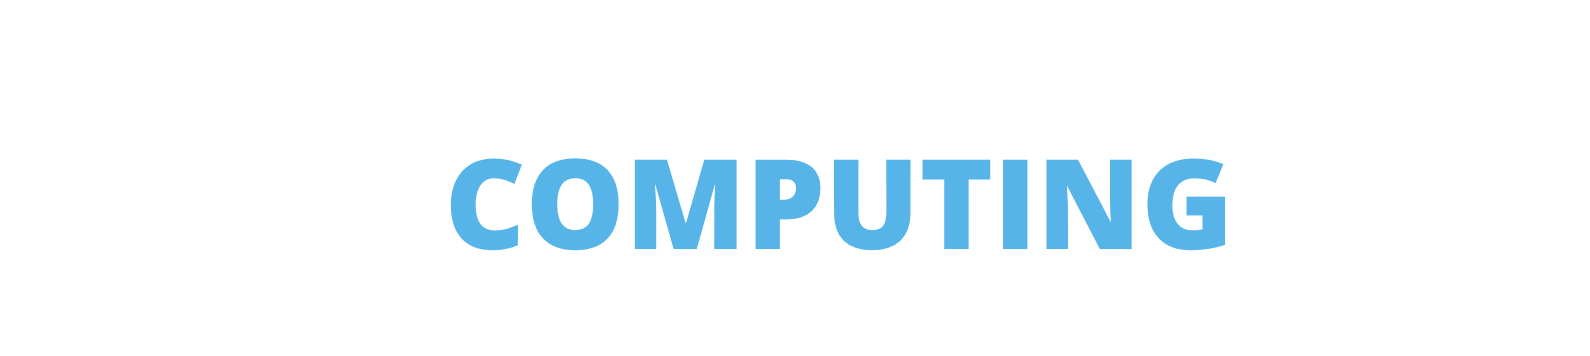 Research Computing at Leeds